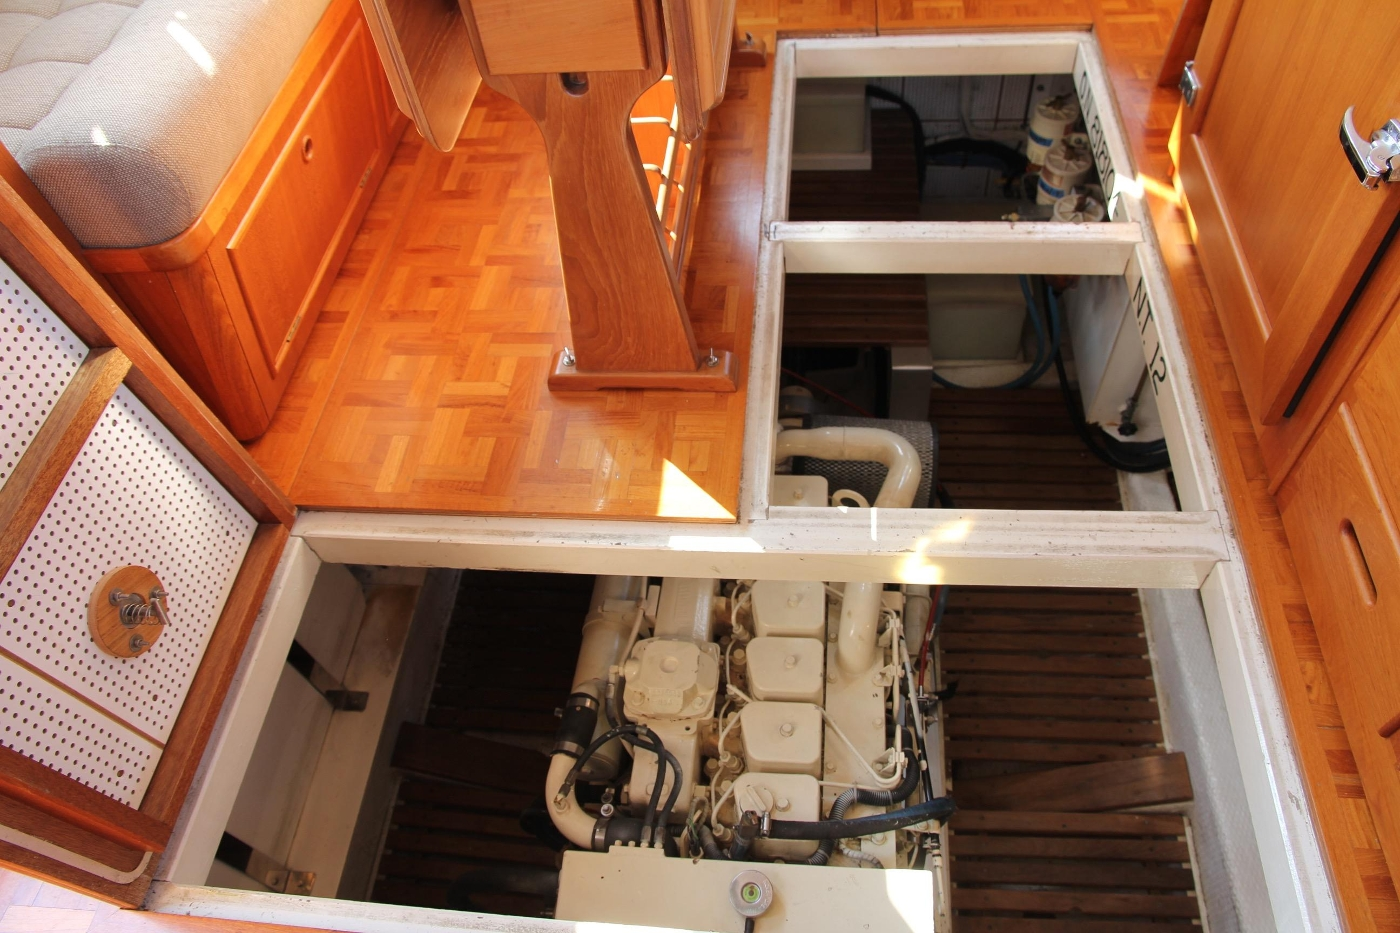 1995 Grand Banks 36 Classic, Engine Room Access